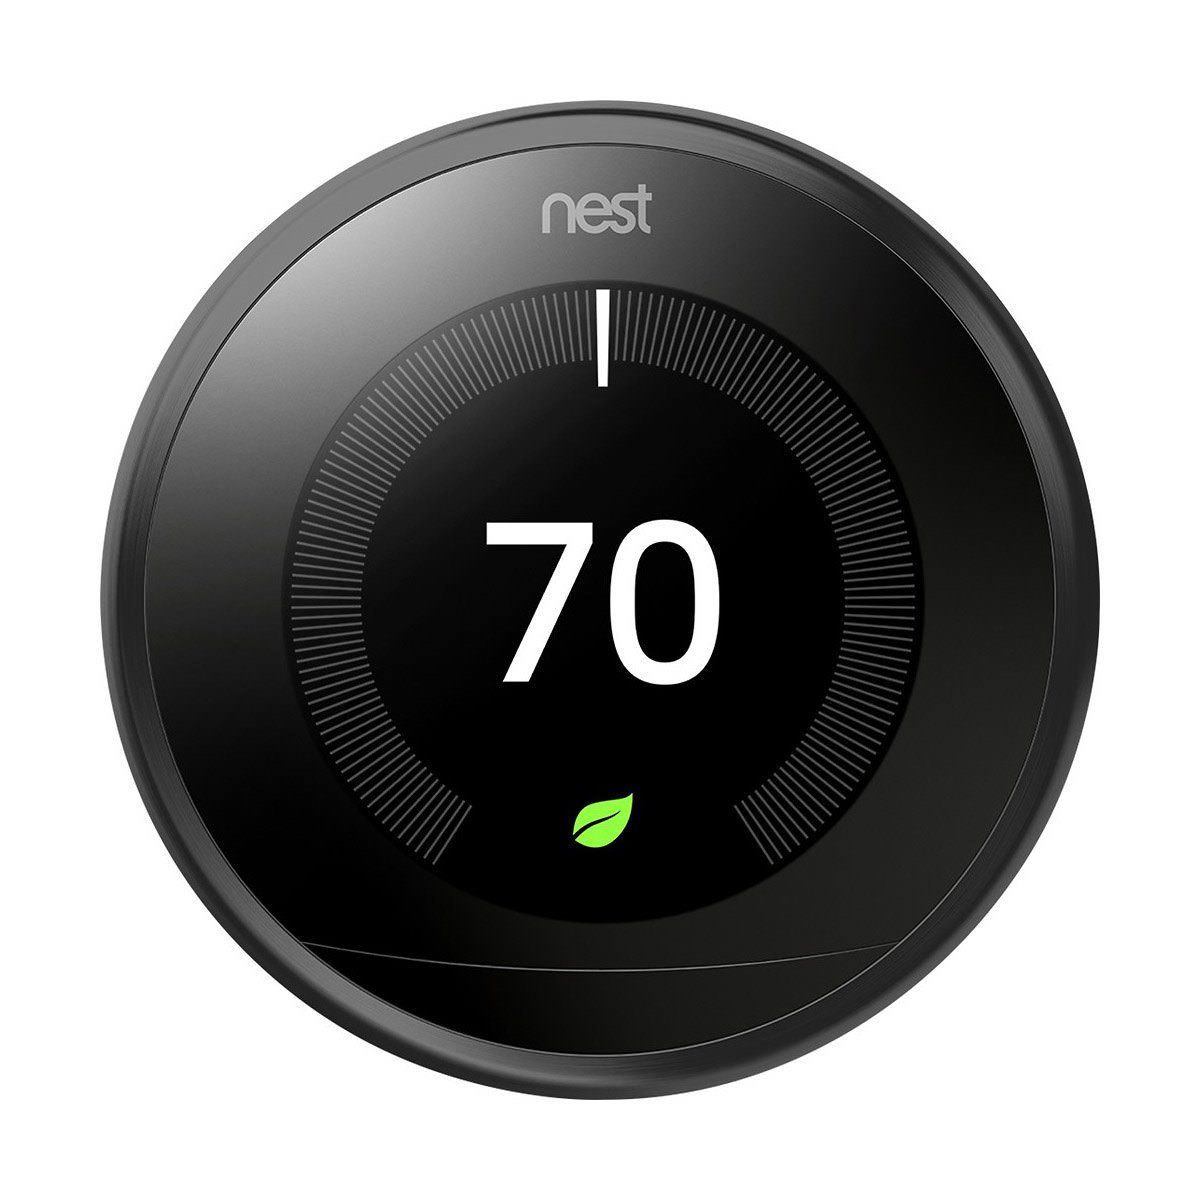 Nest Learning Thermostat (3rd Generation) 178.50 + Free